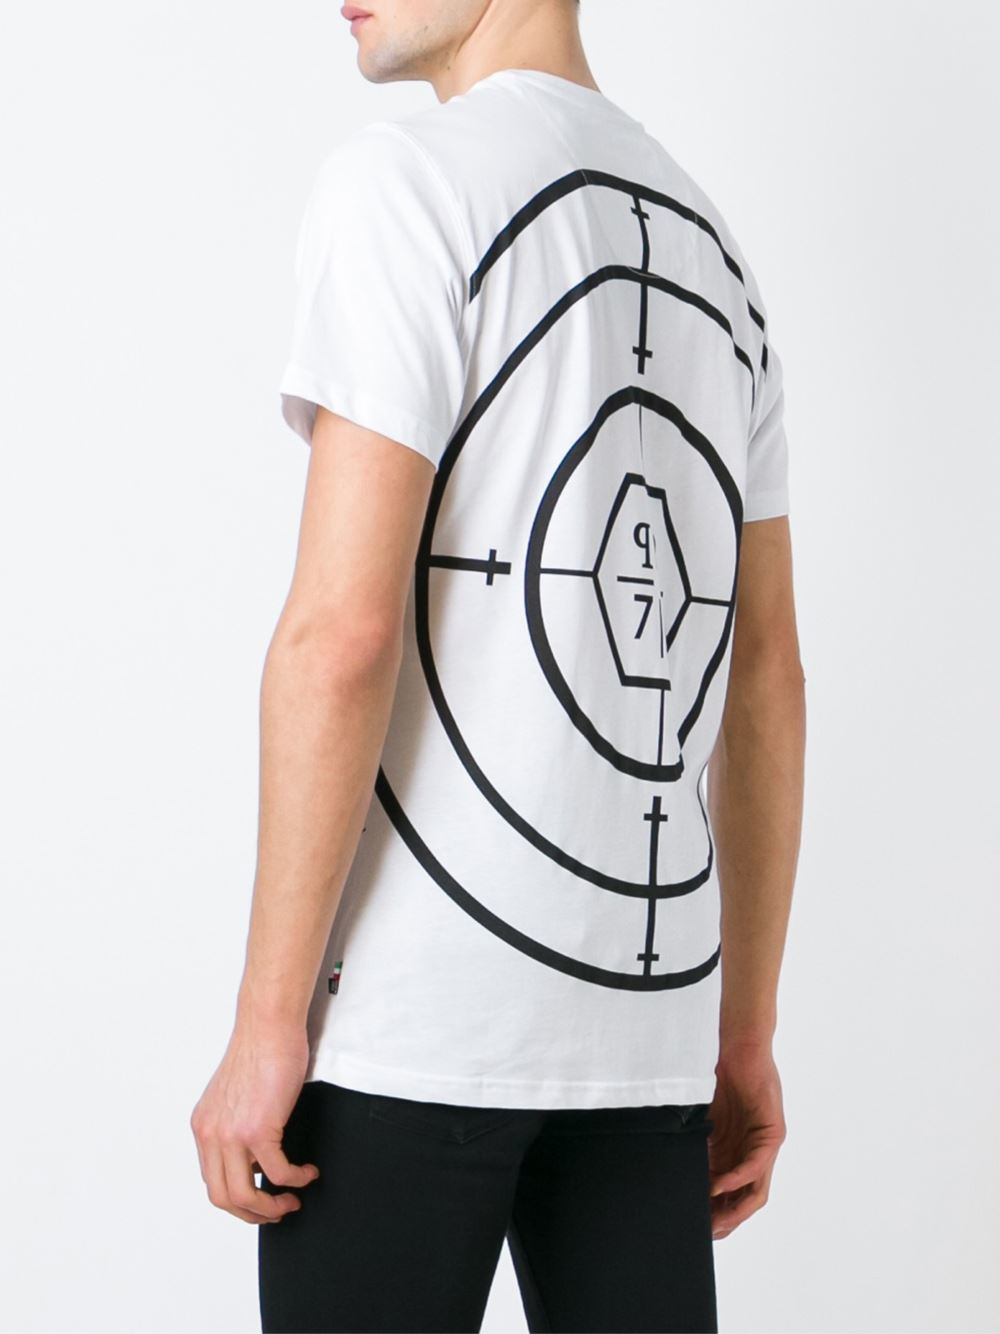 philipp plein target engaged t shirt in white for men lyst. Black Bedroom Furniture Sets. Home Design Ideas